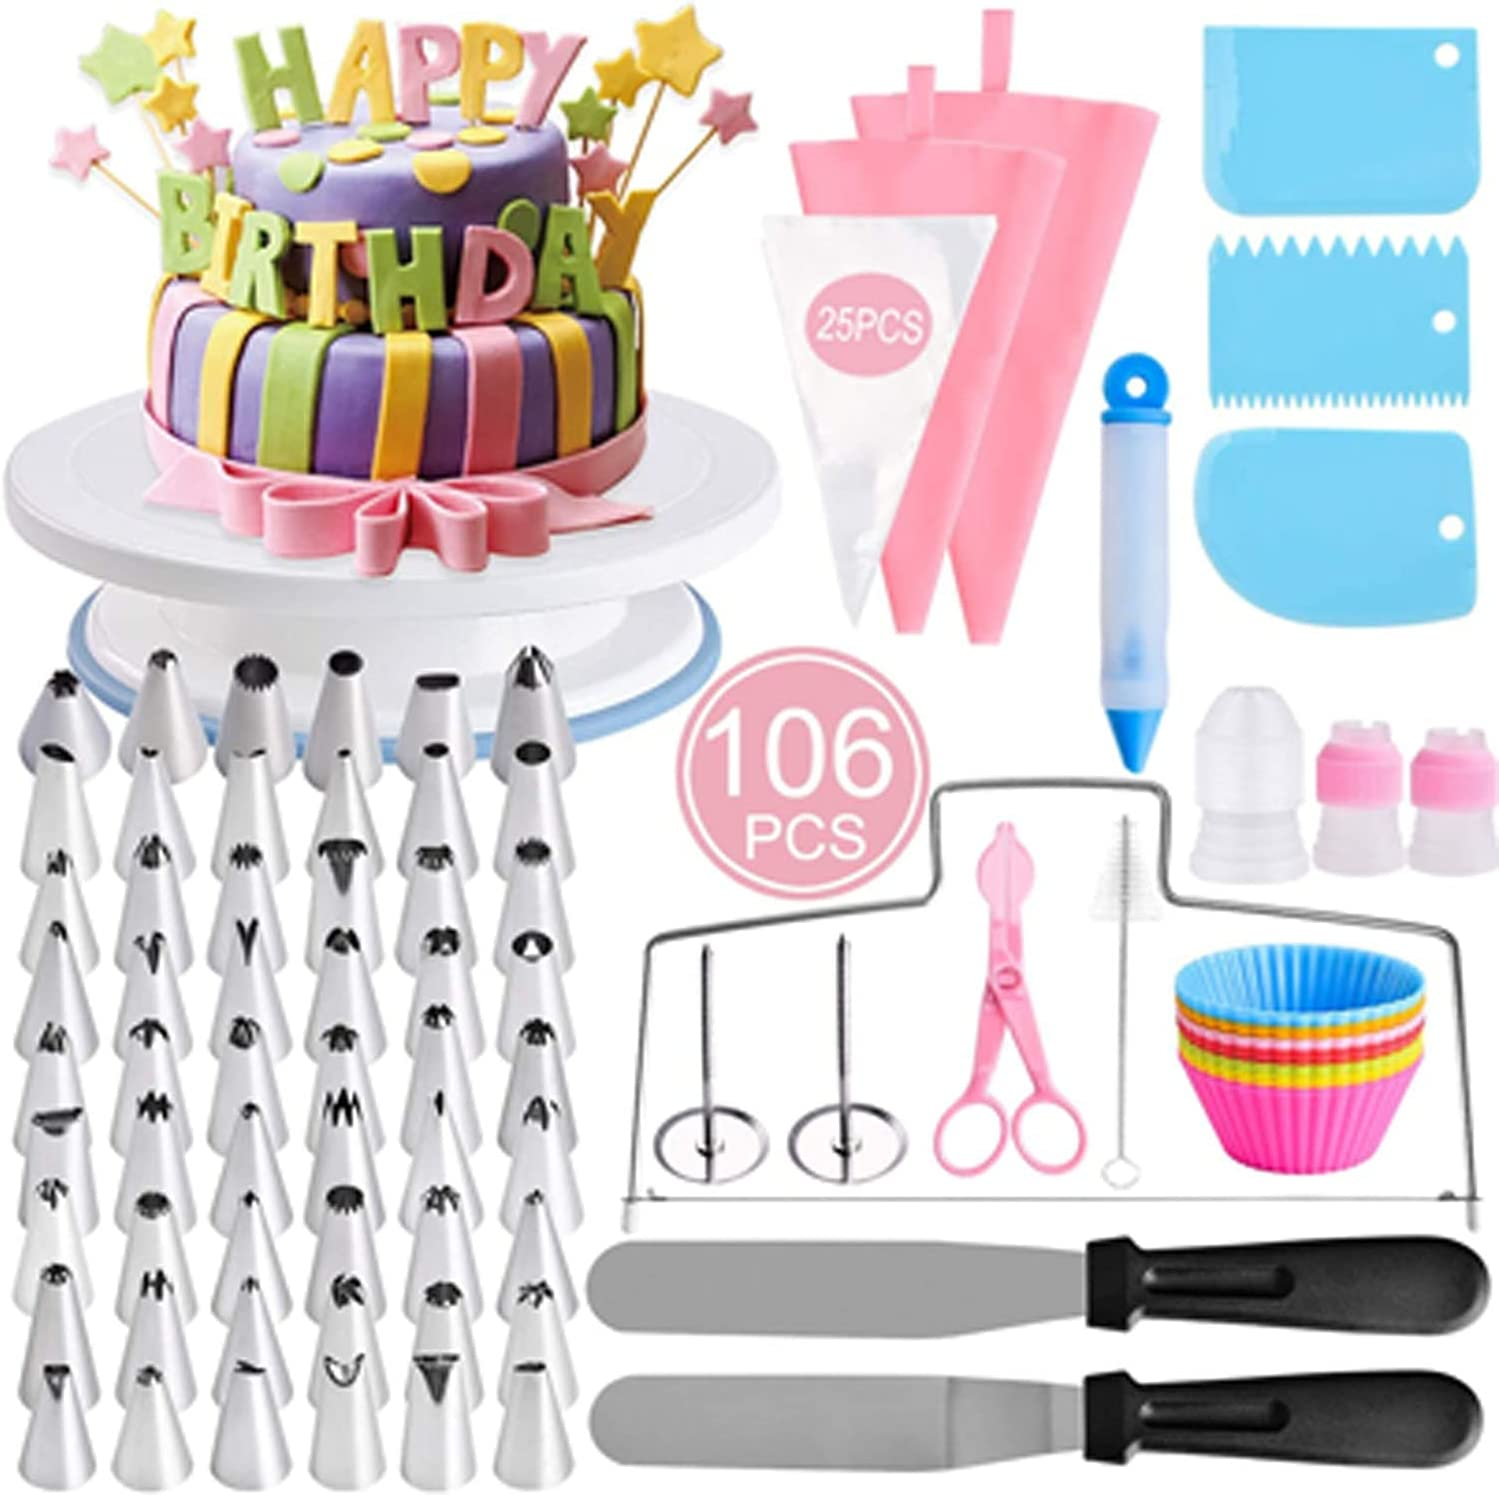 106 Pcs Cake Choice Decorating mart Kit with Turntable 54 Supplies Ici